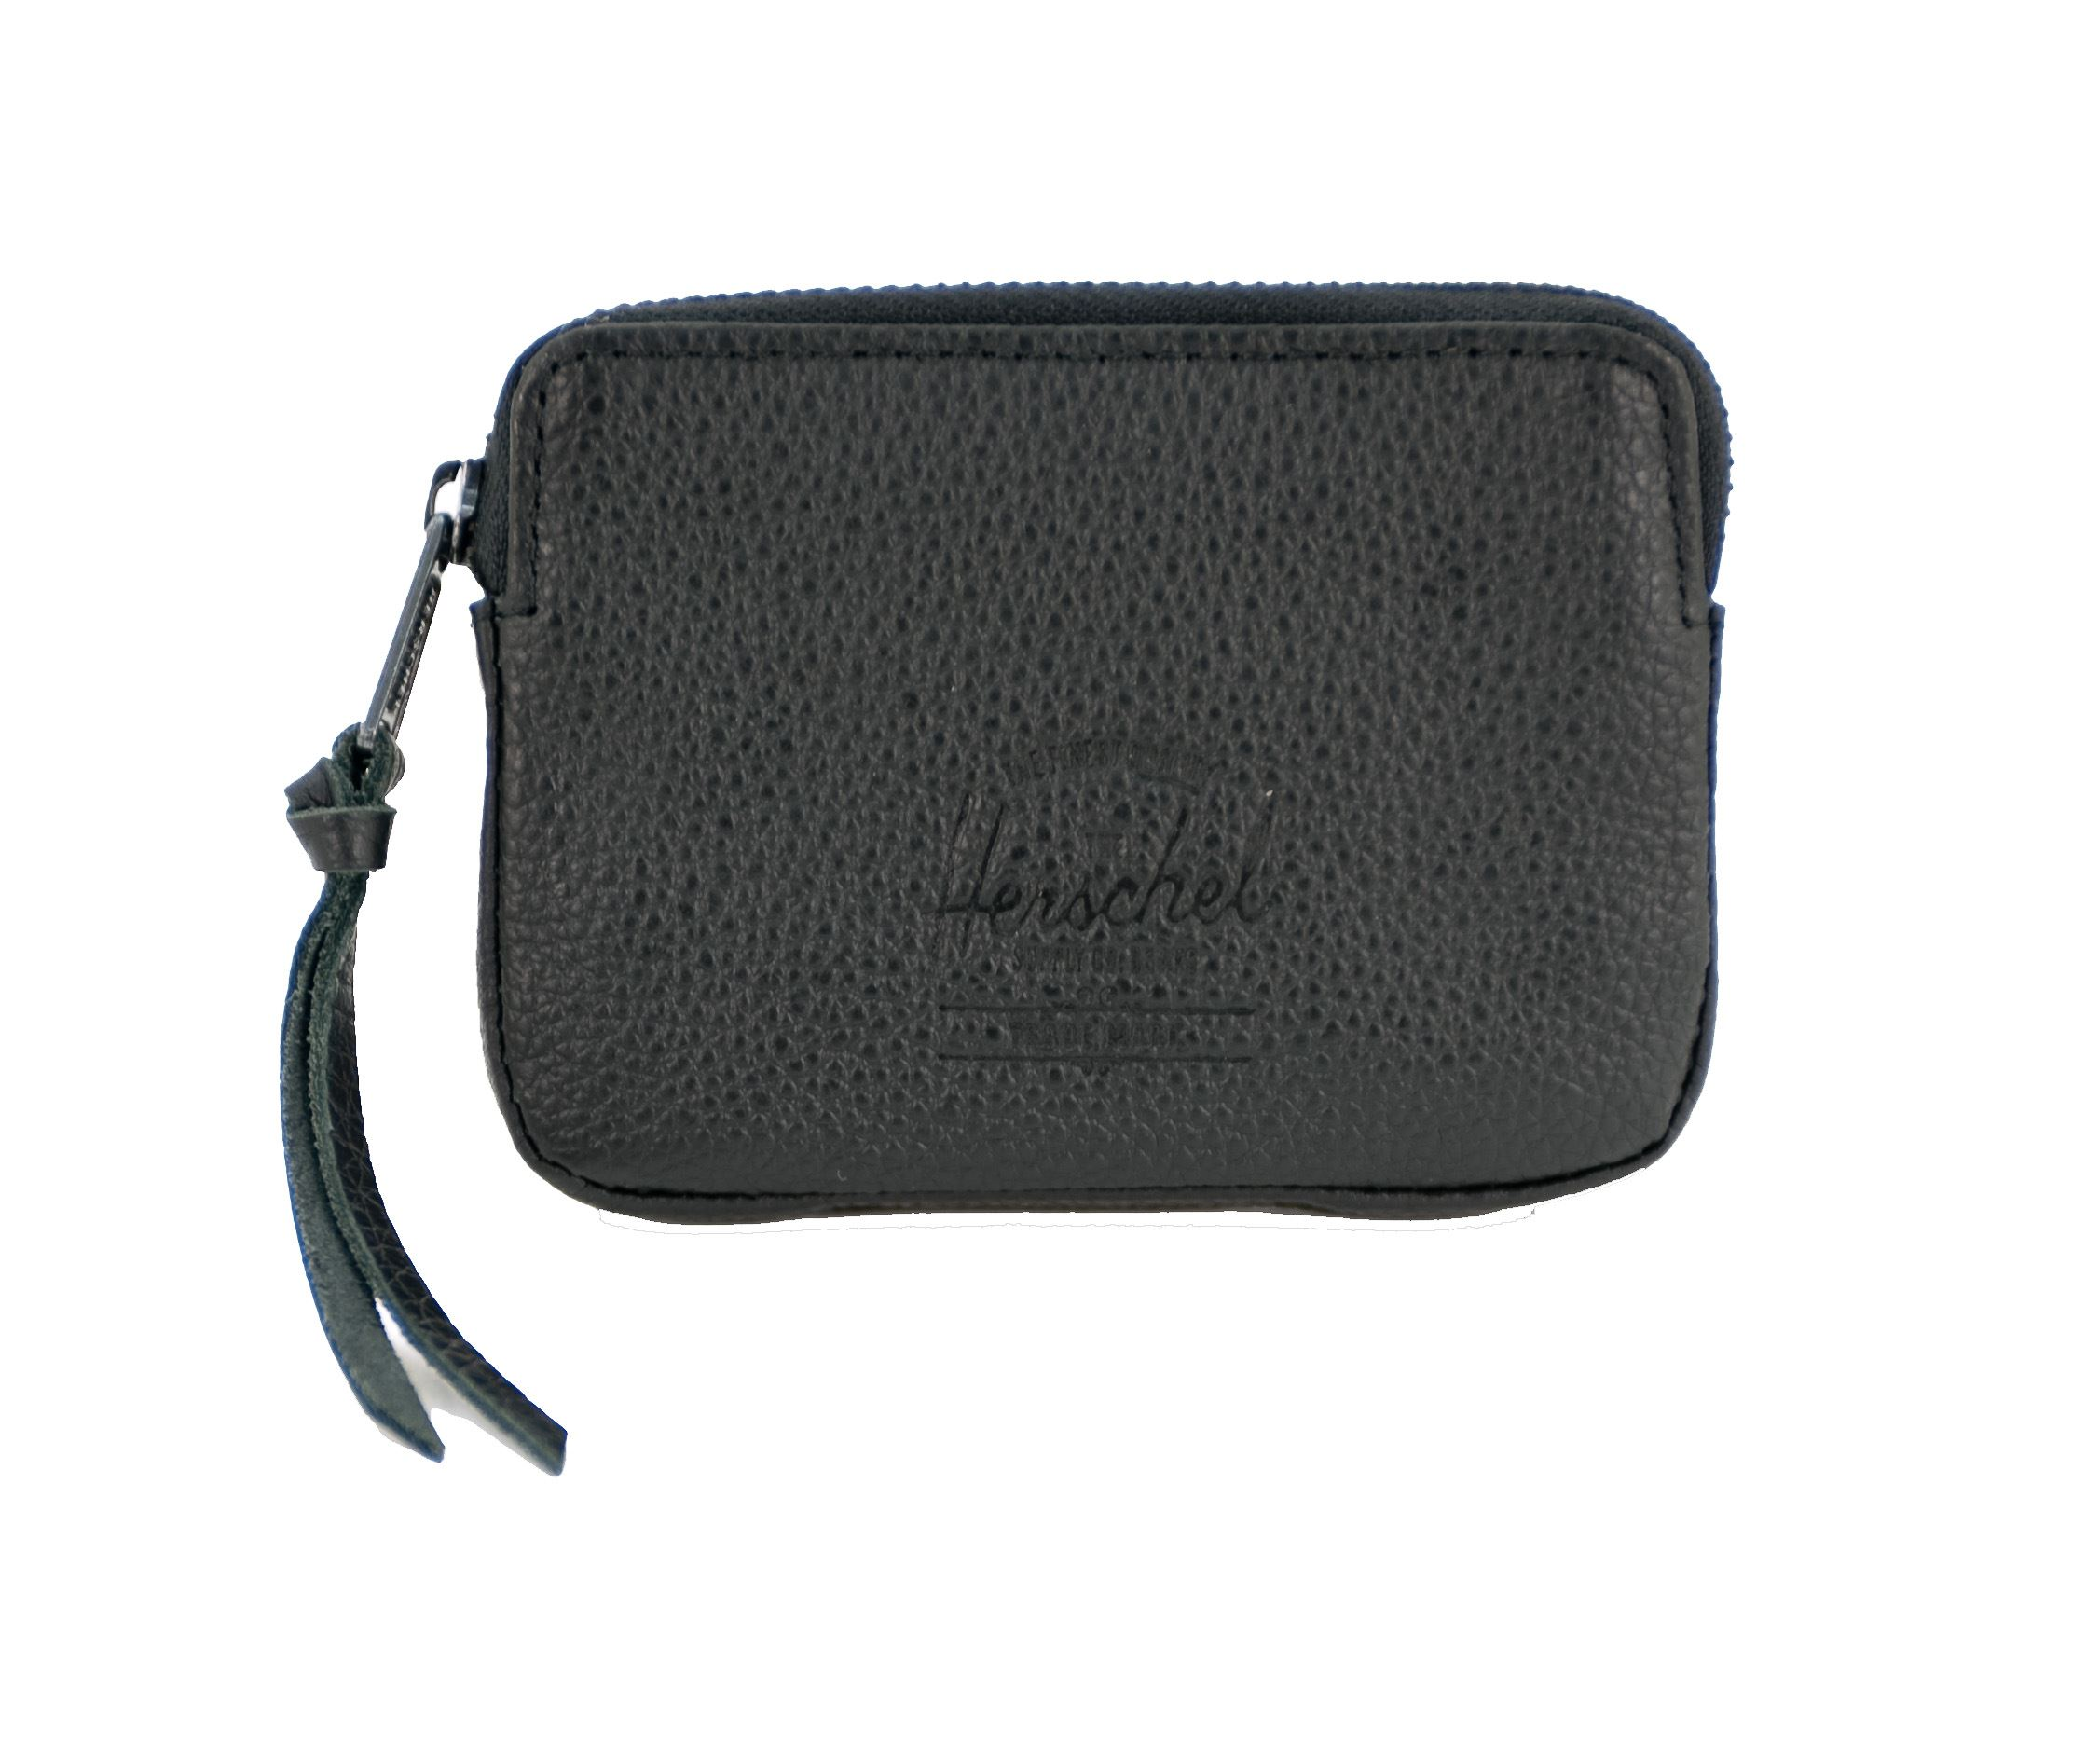 Immagine di HERSCHEL OXFORD POUCH LEATHER RFID